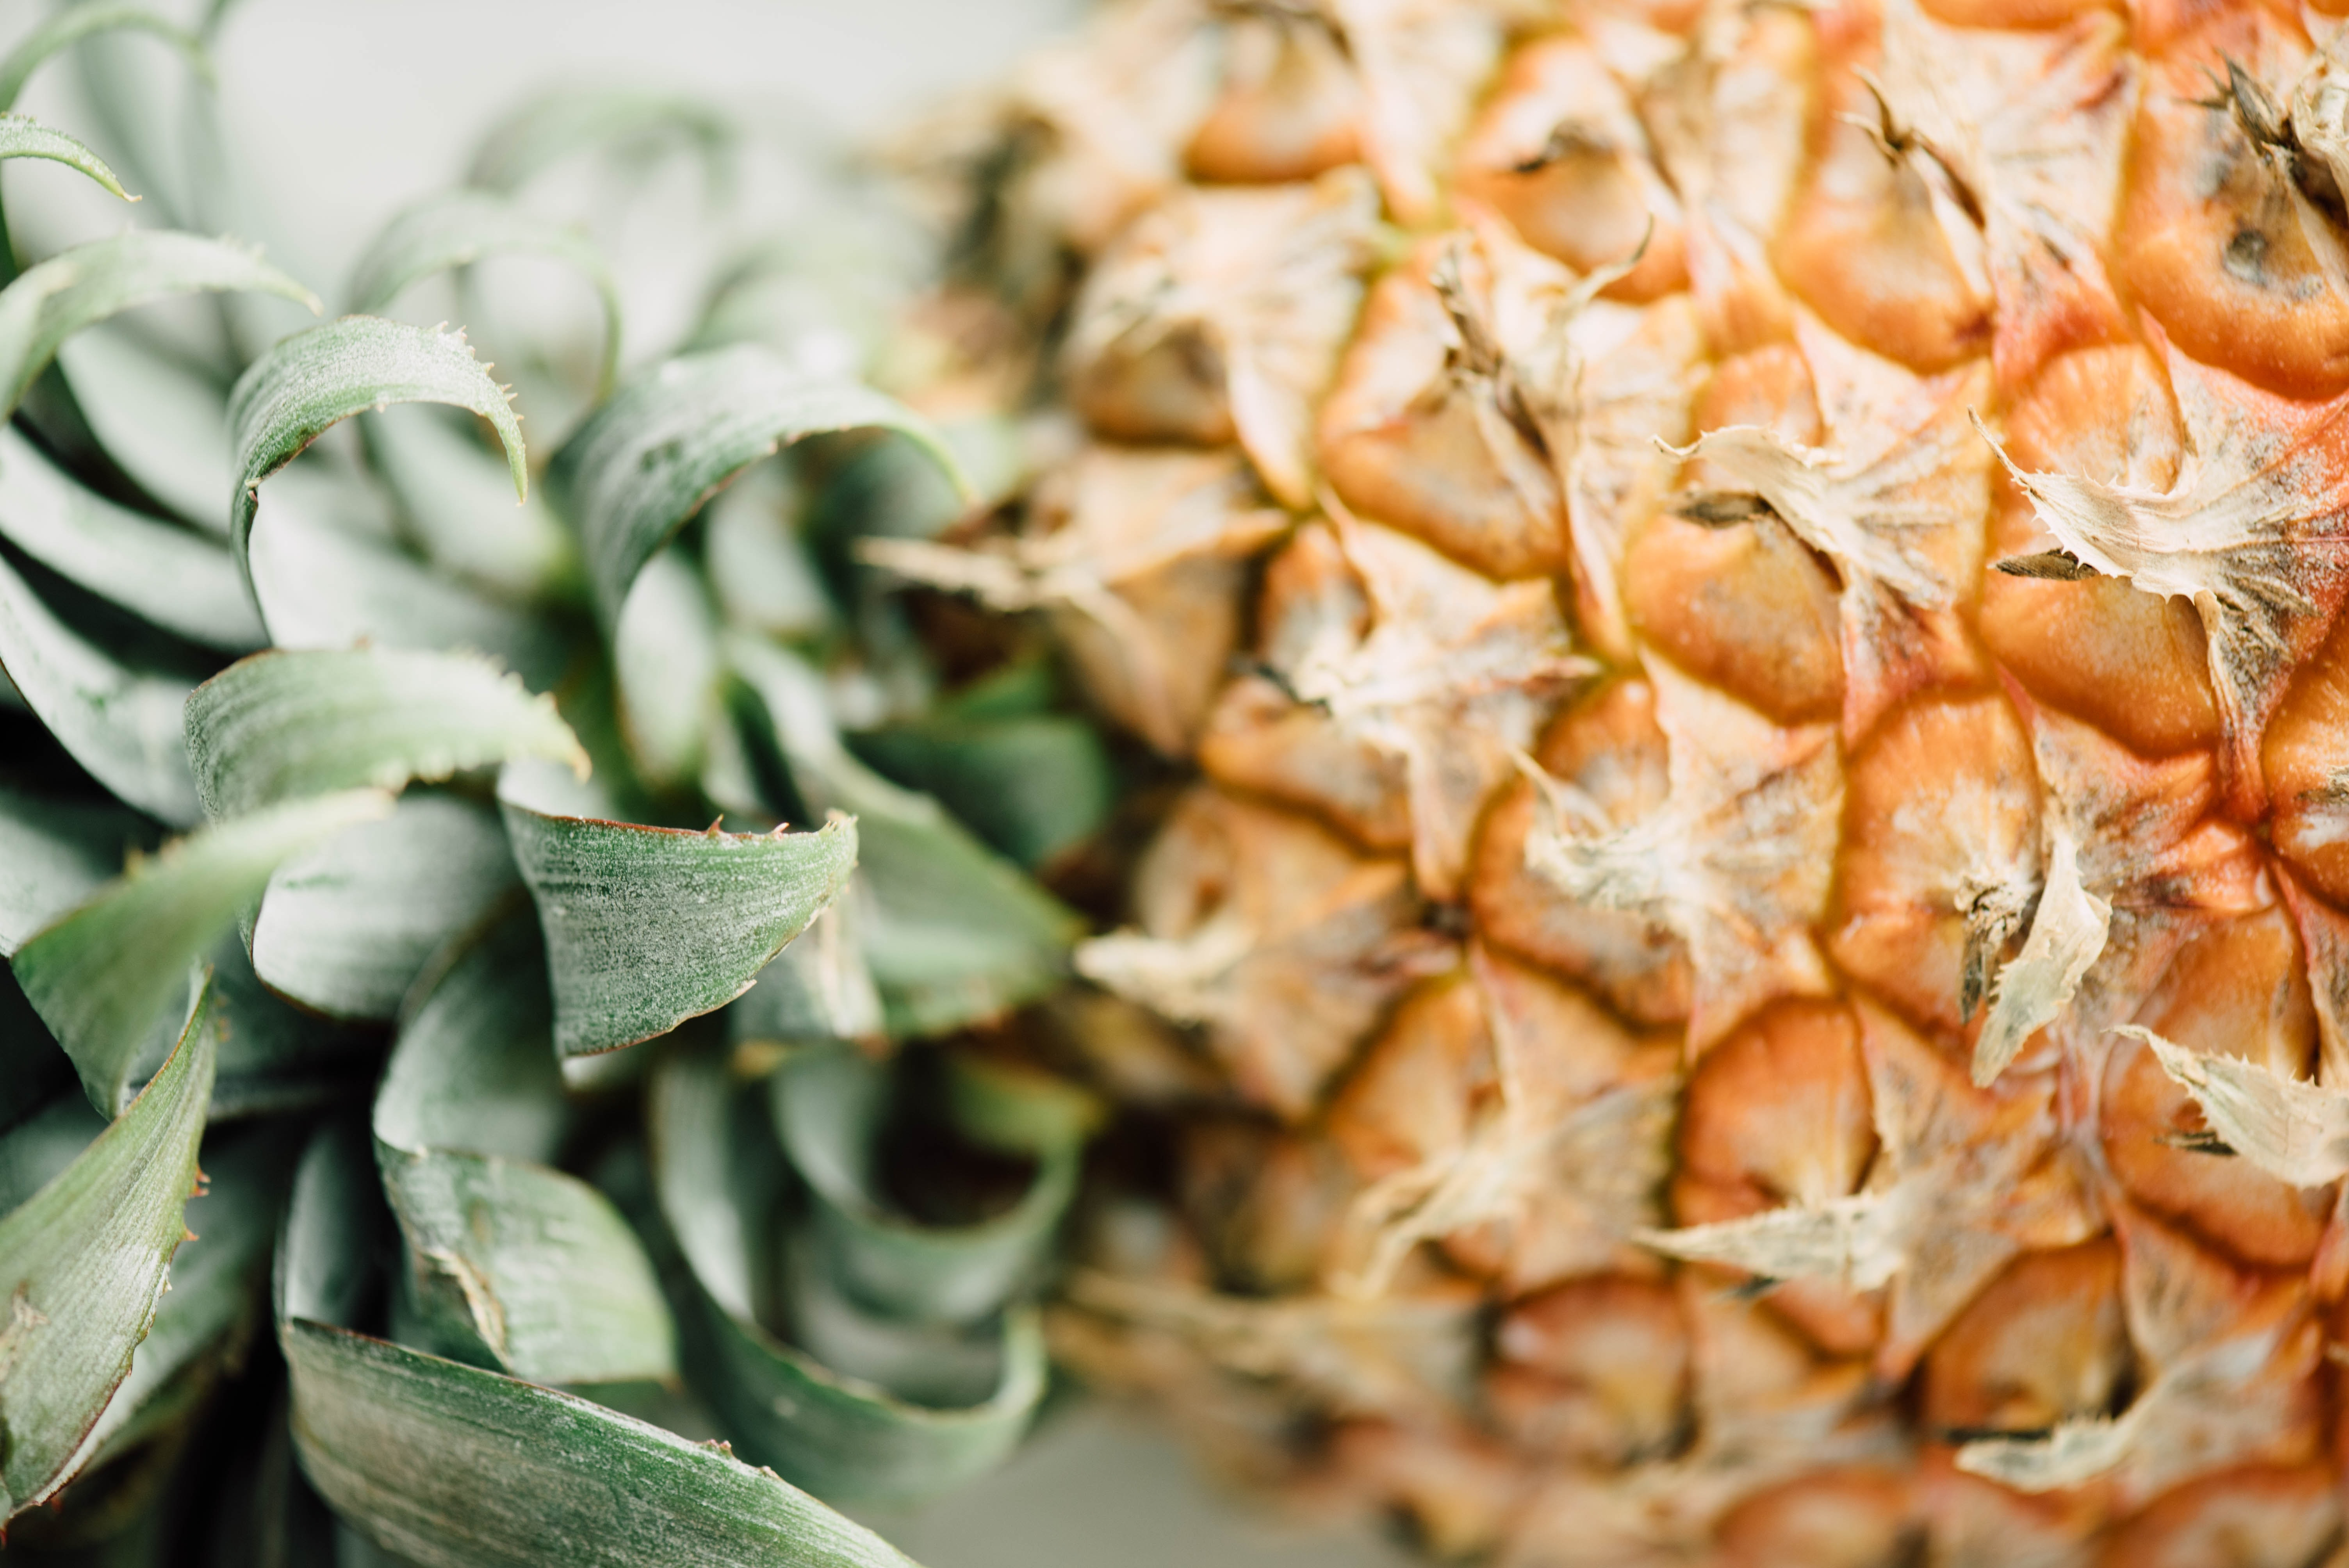 Macro shot of a pineapple lying down.